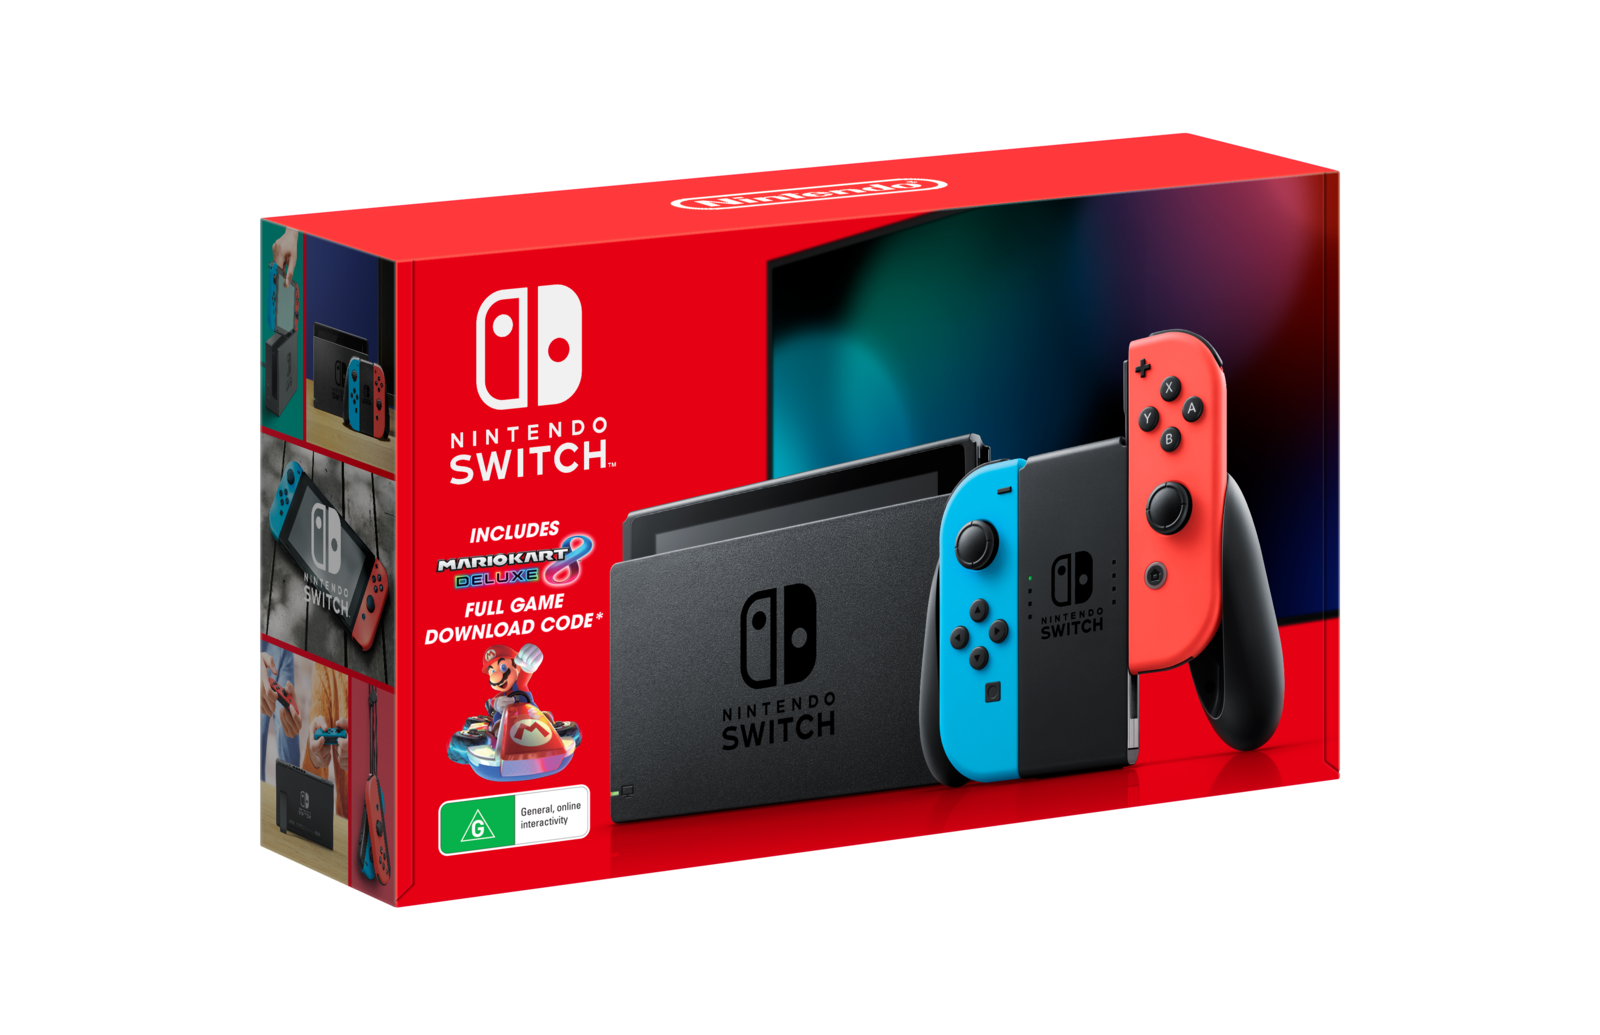 Nintendo Switch Mario Kart 8 Deluxe Neon Console Bundle for Switch image